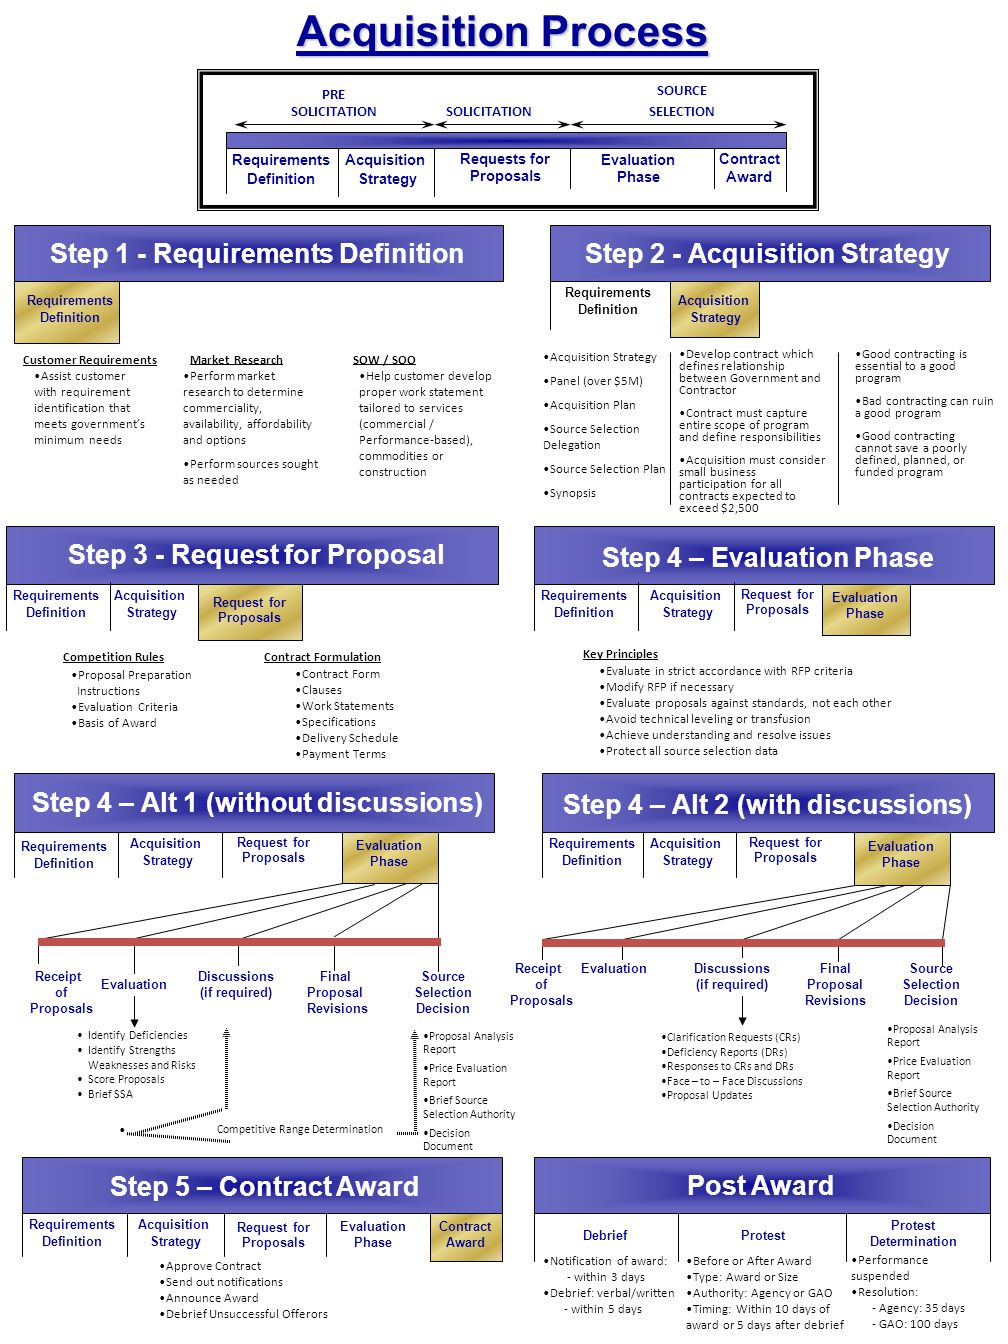 Acquisition Process Requirements Definition Acquisition Strategy Requests for Proposals Contract Award Evaluation Phase Step 1 - Requirements Definiti